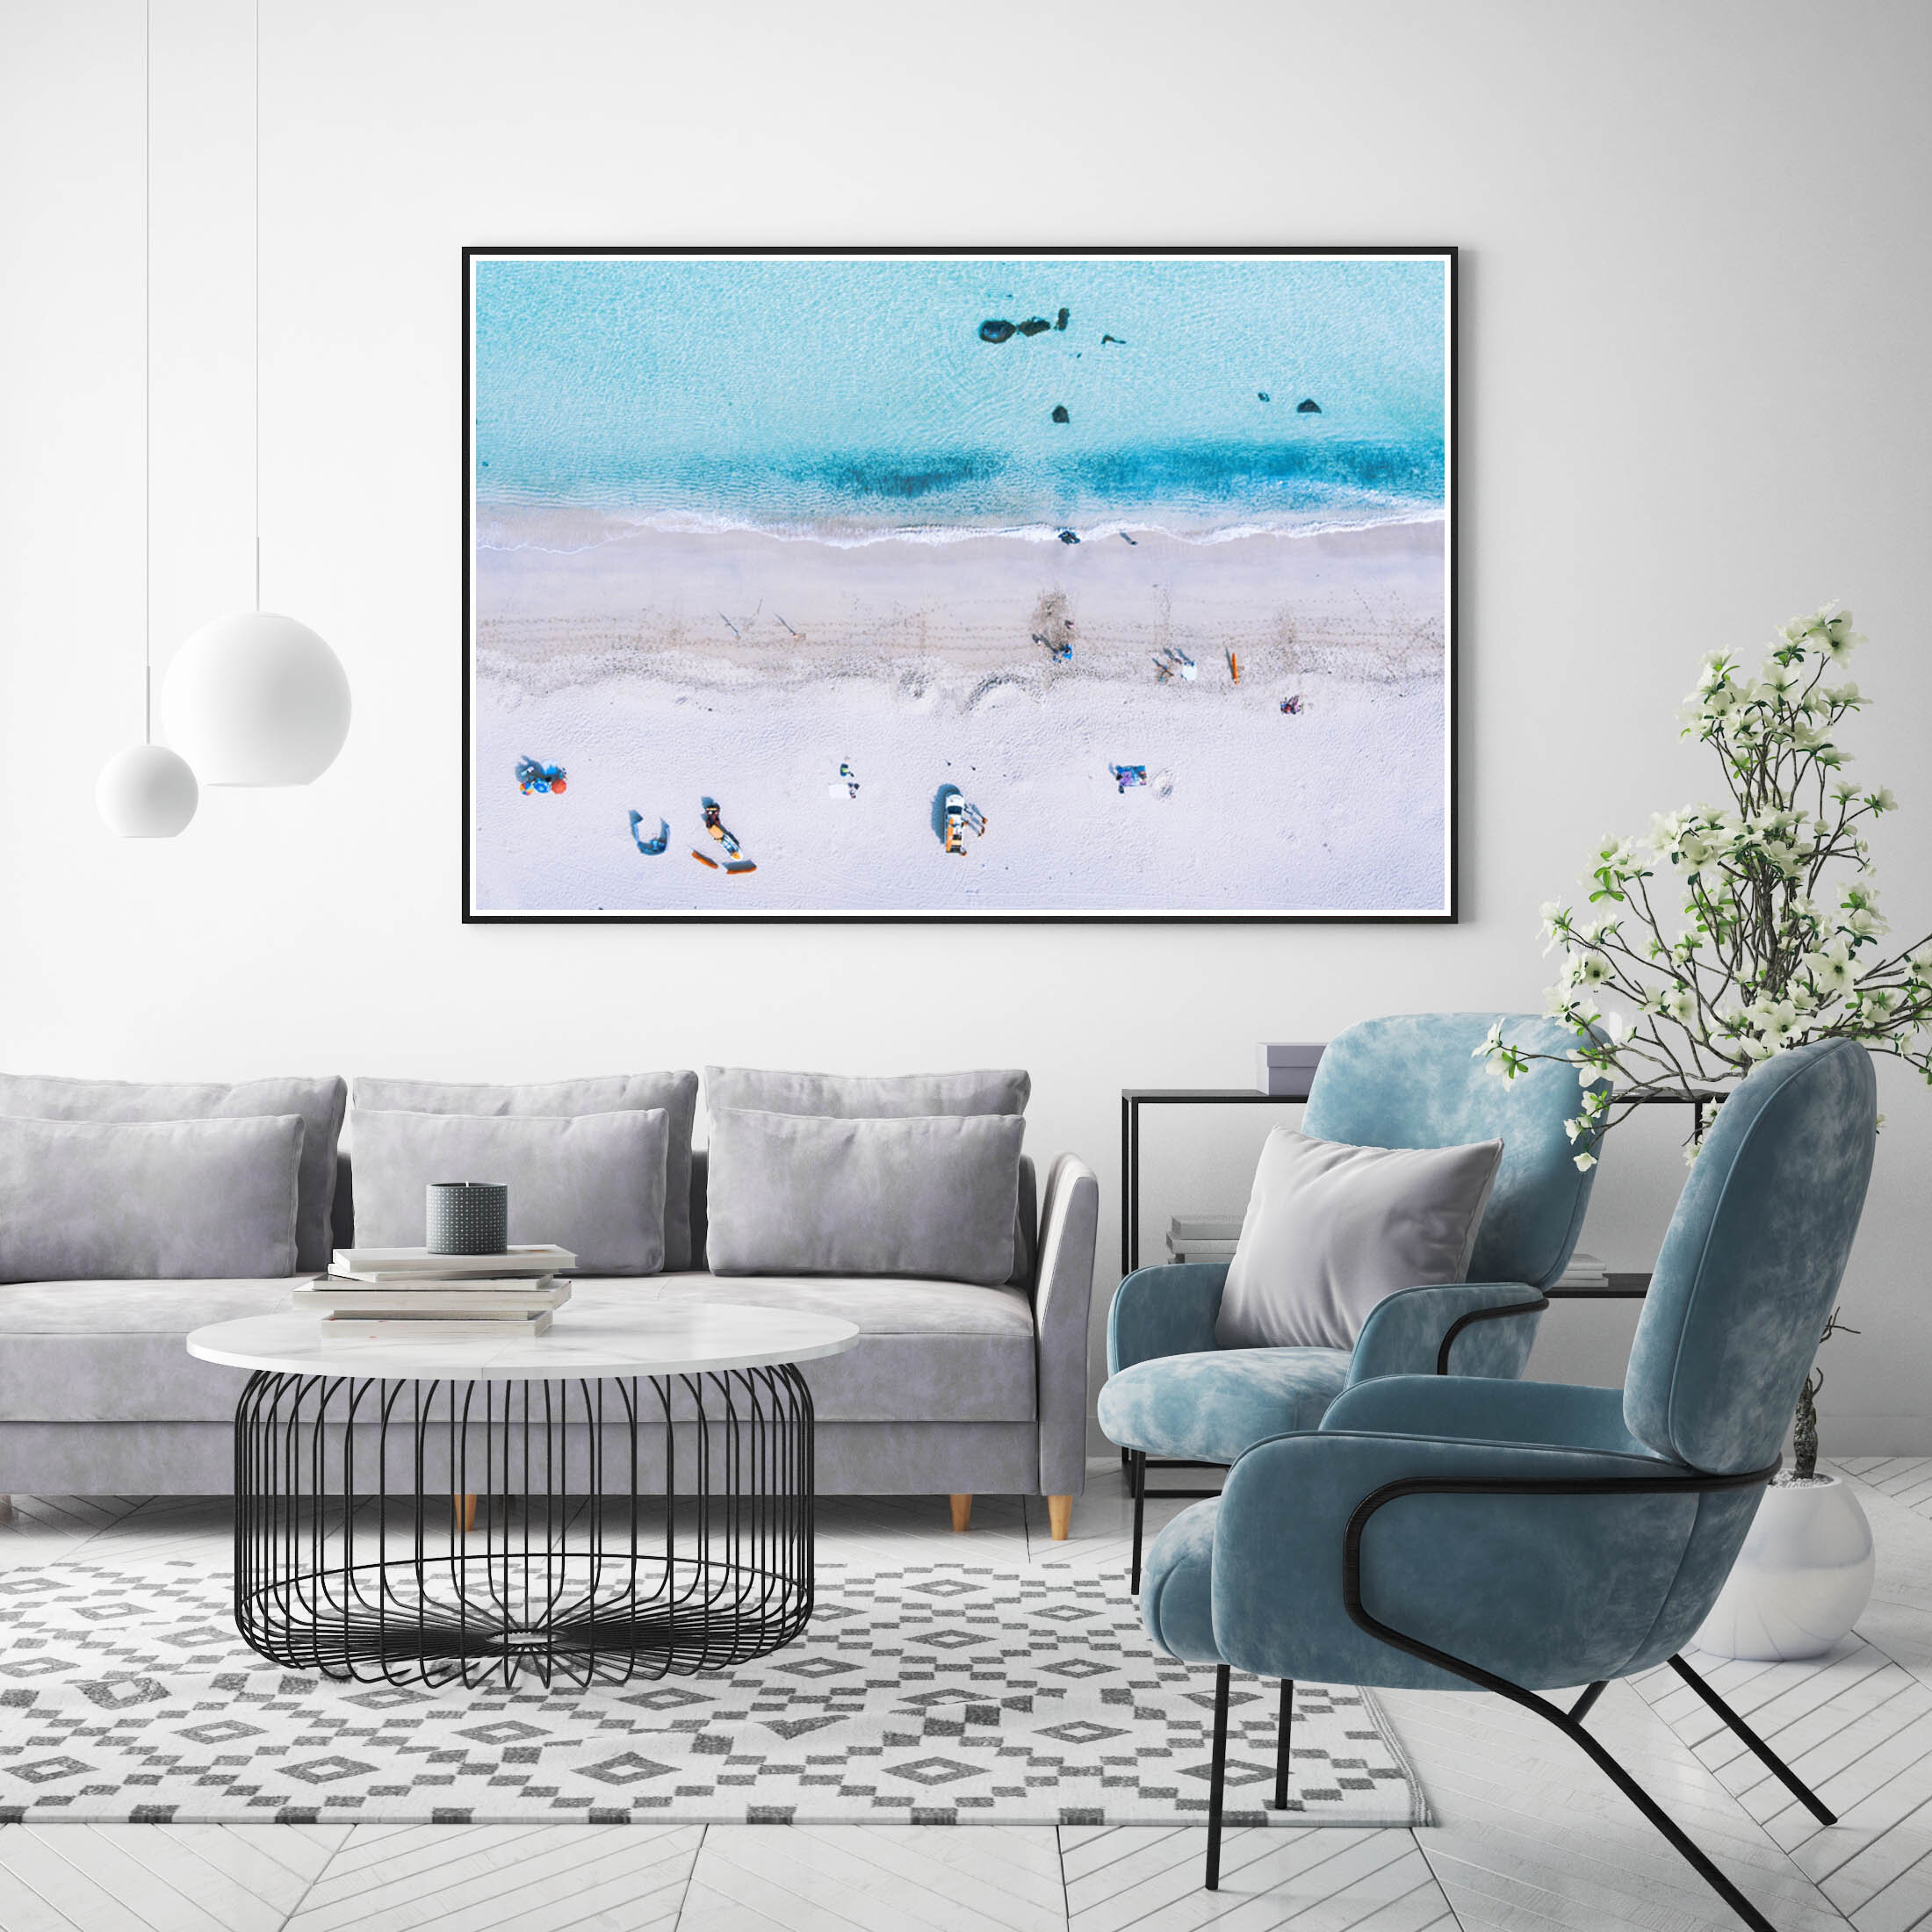 Coastal interiors - The perfect image to add to a coastal inspired interior? A coastal image. Tie your blue and white interiors together with a blue and white beach scene. After, all who get's tired of looking at a stunning Cornish beach.